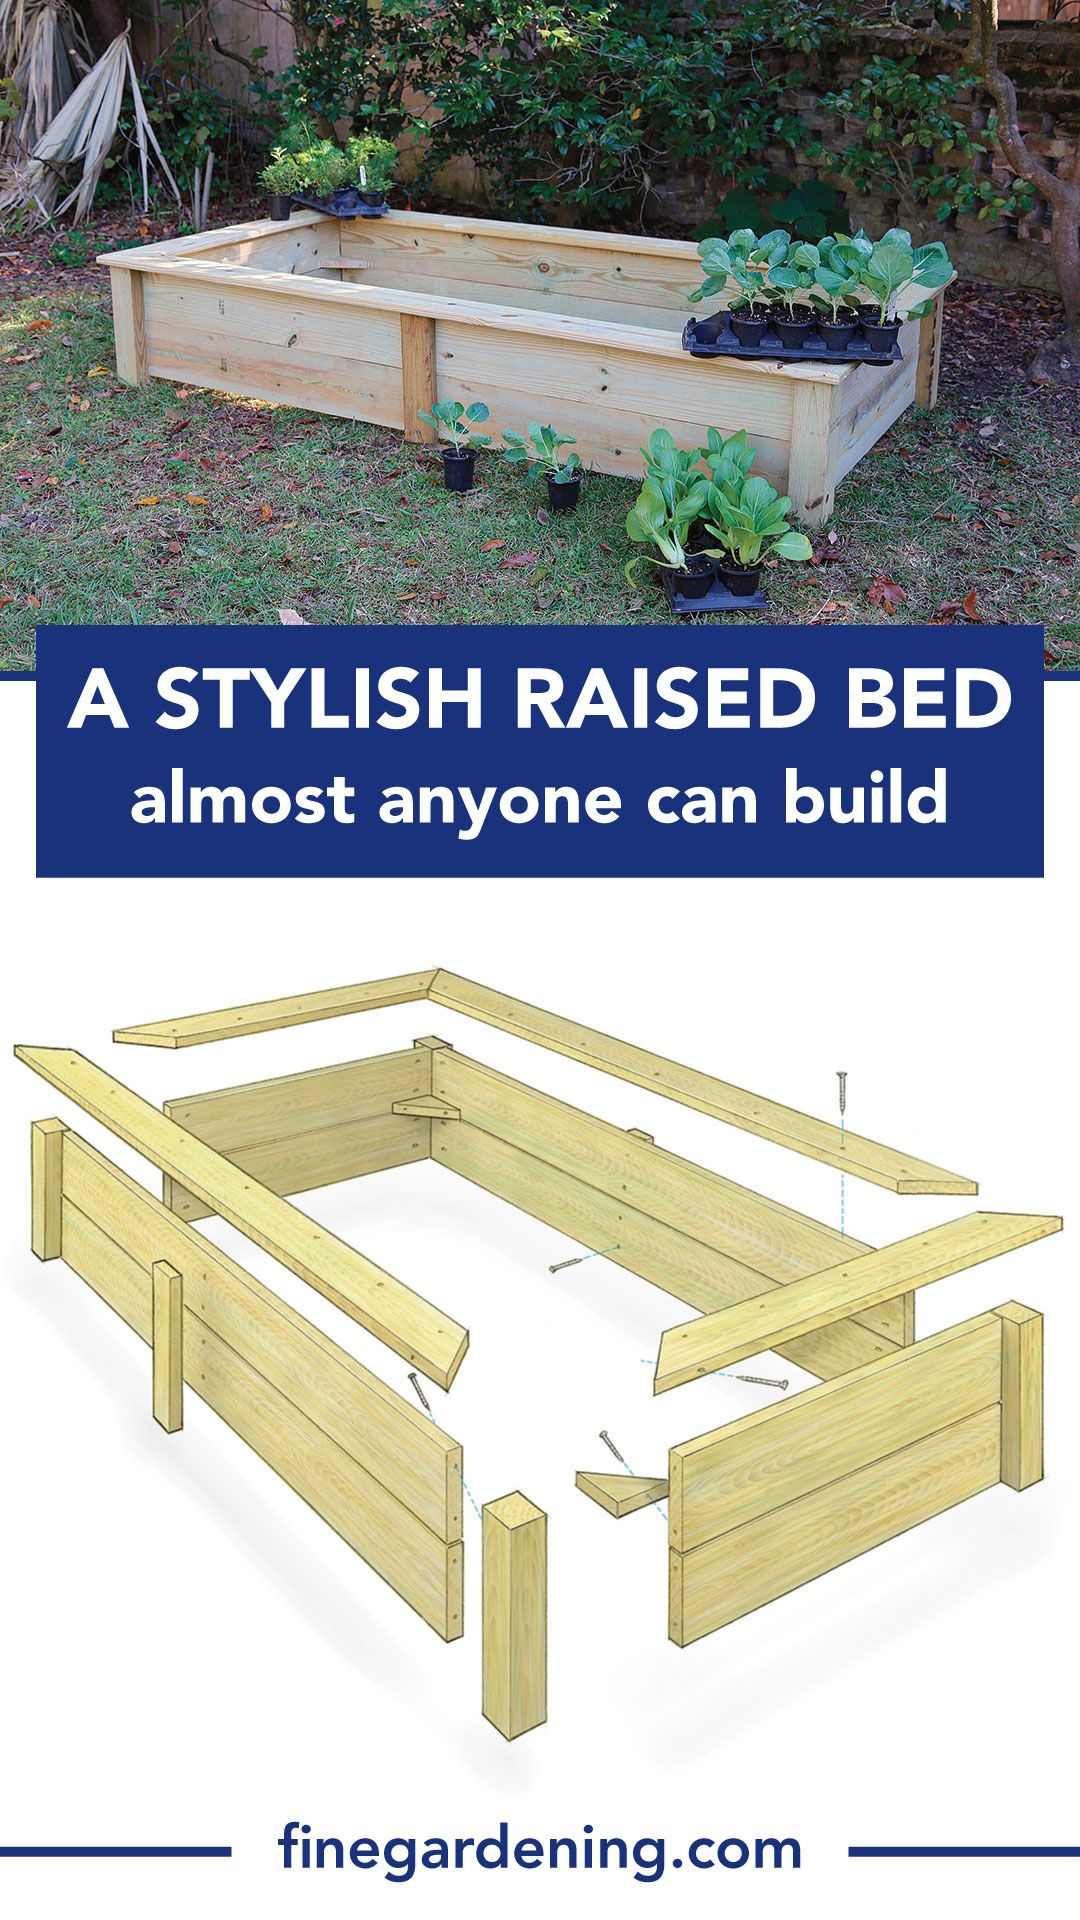 A Stylish Raised Bed Almost Anyone Can Build Finegardening Raised Garden Beds Diy Vegetables Raised Garden Beds Diy Building Raised Garden Beds